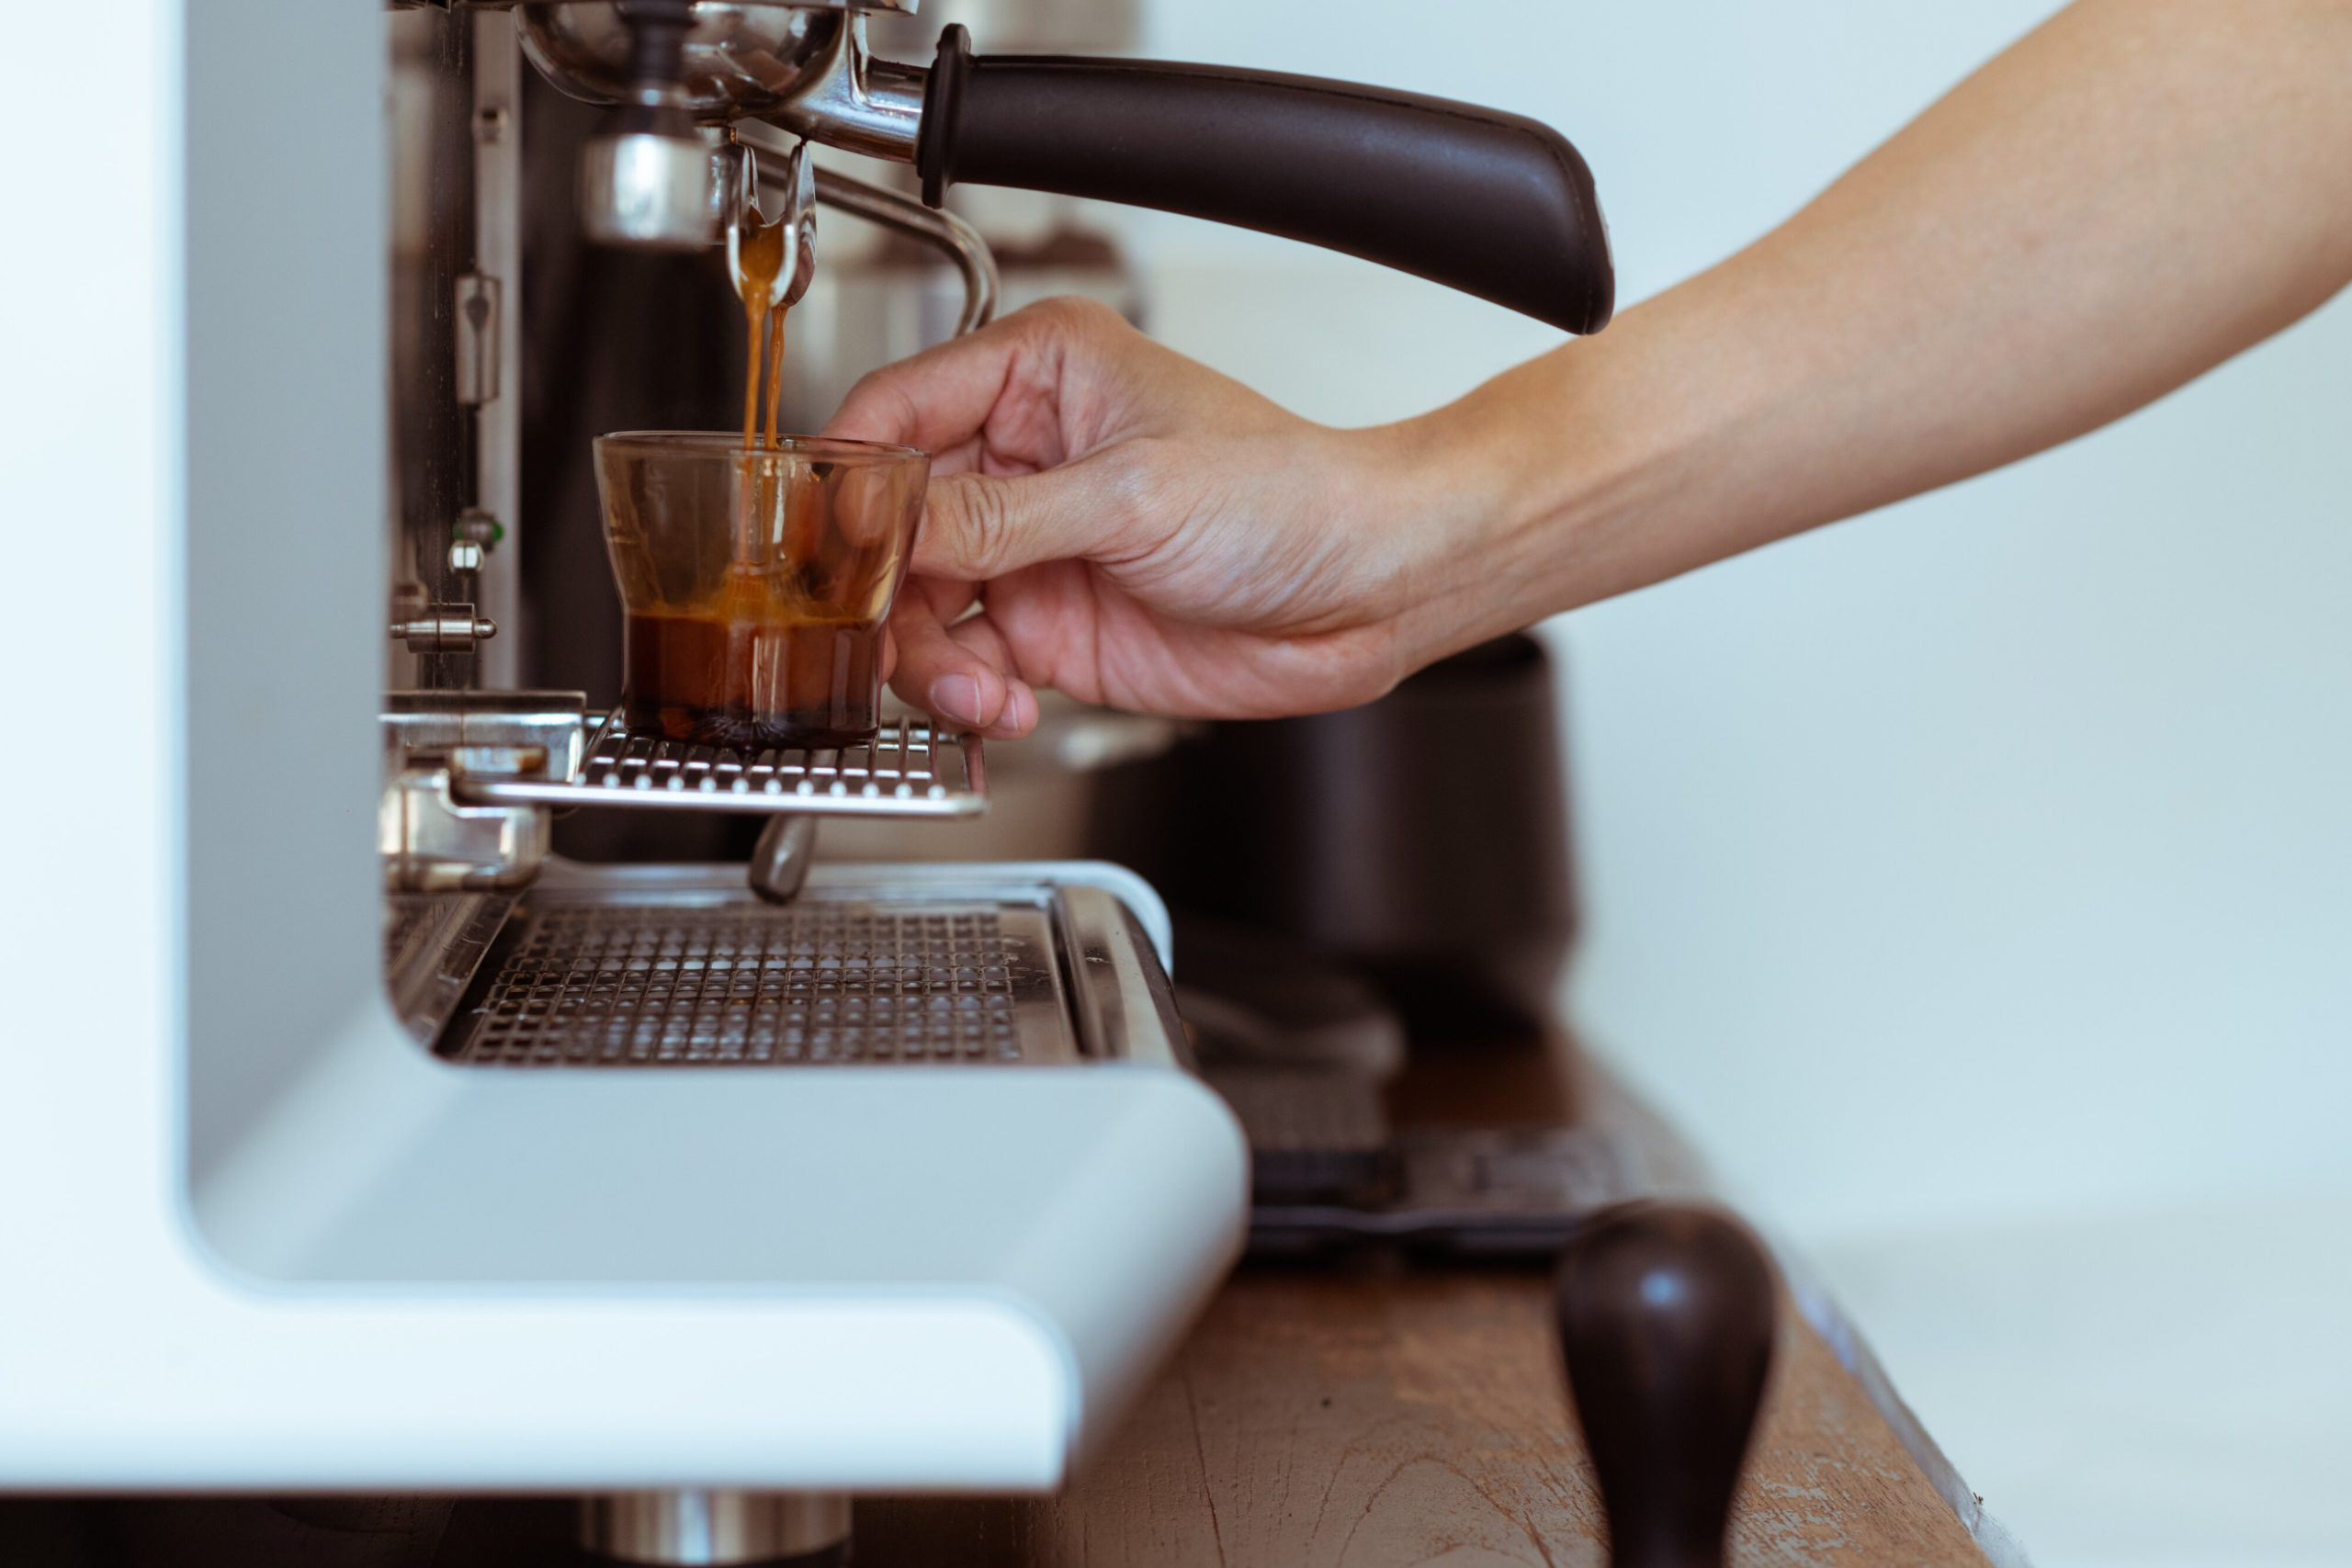 espresso being extracted from a machine